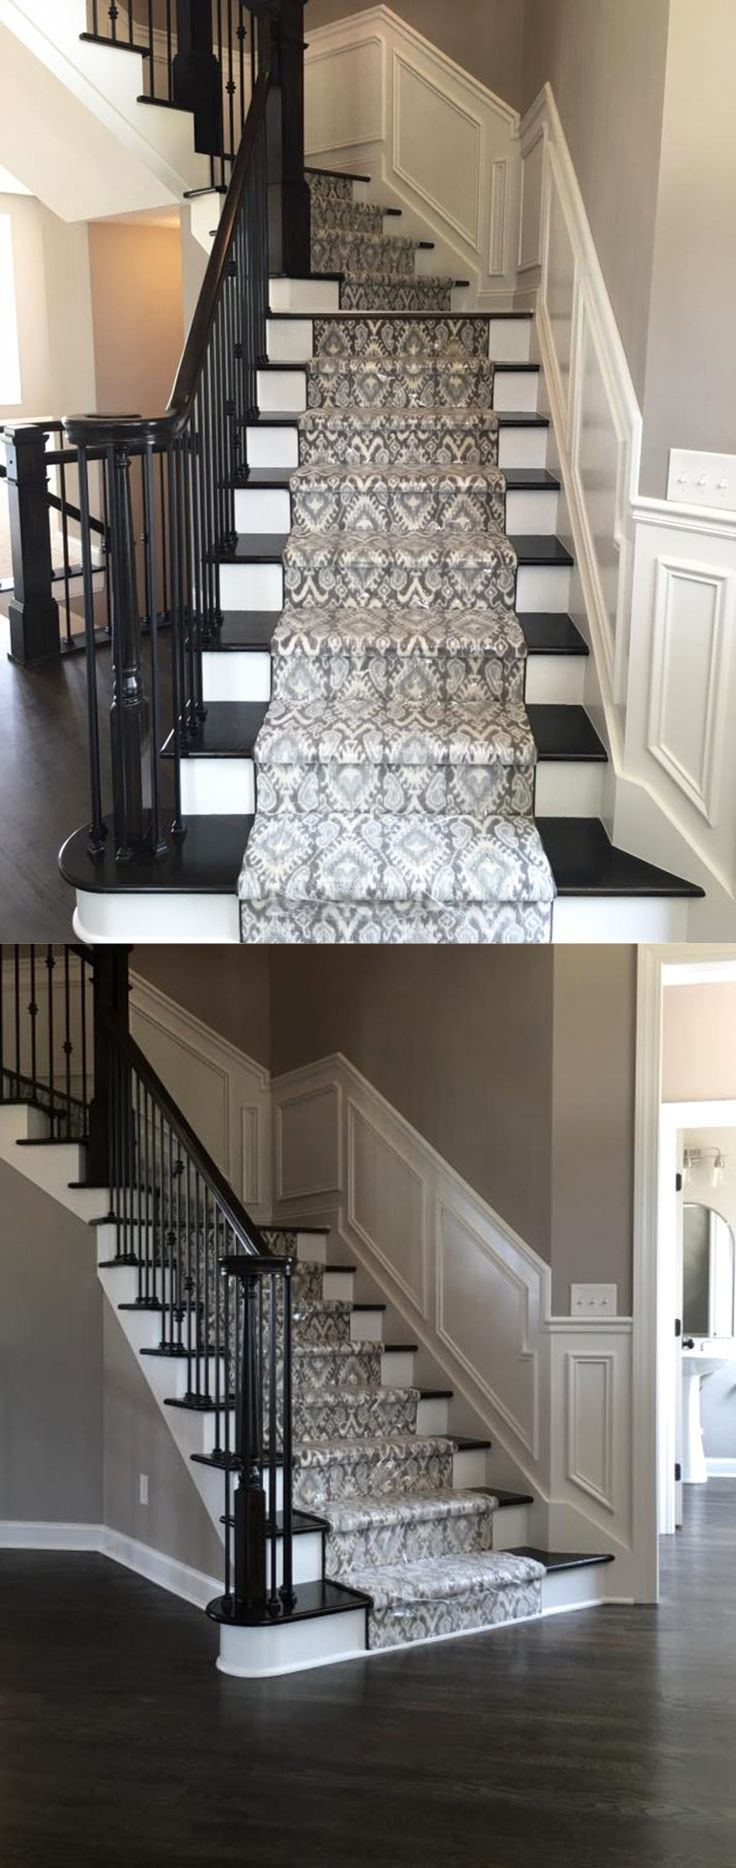 Lighting Basement Washroom Stairs: Beautiful Patterned Stair Runner On Dark Stained Stairs